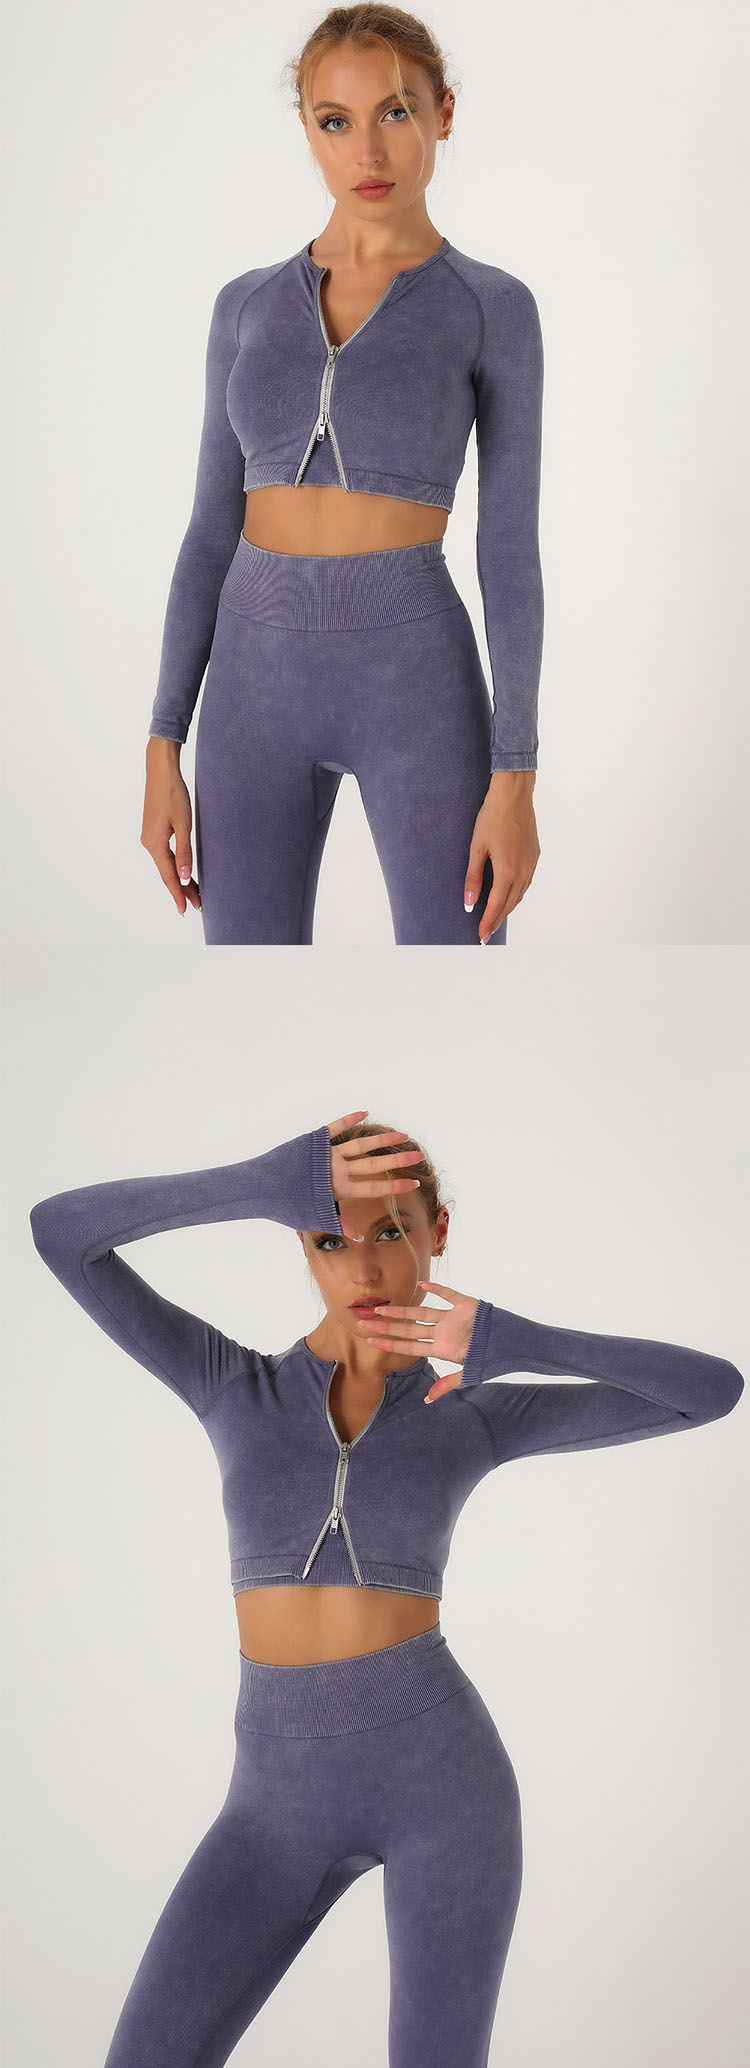 Slim tailoring design fits the body and shows the curve of the figure.